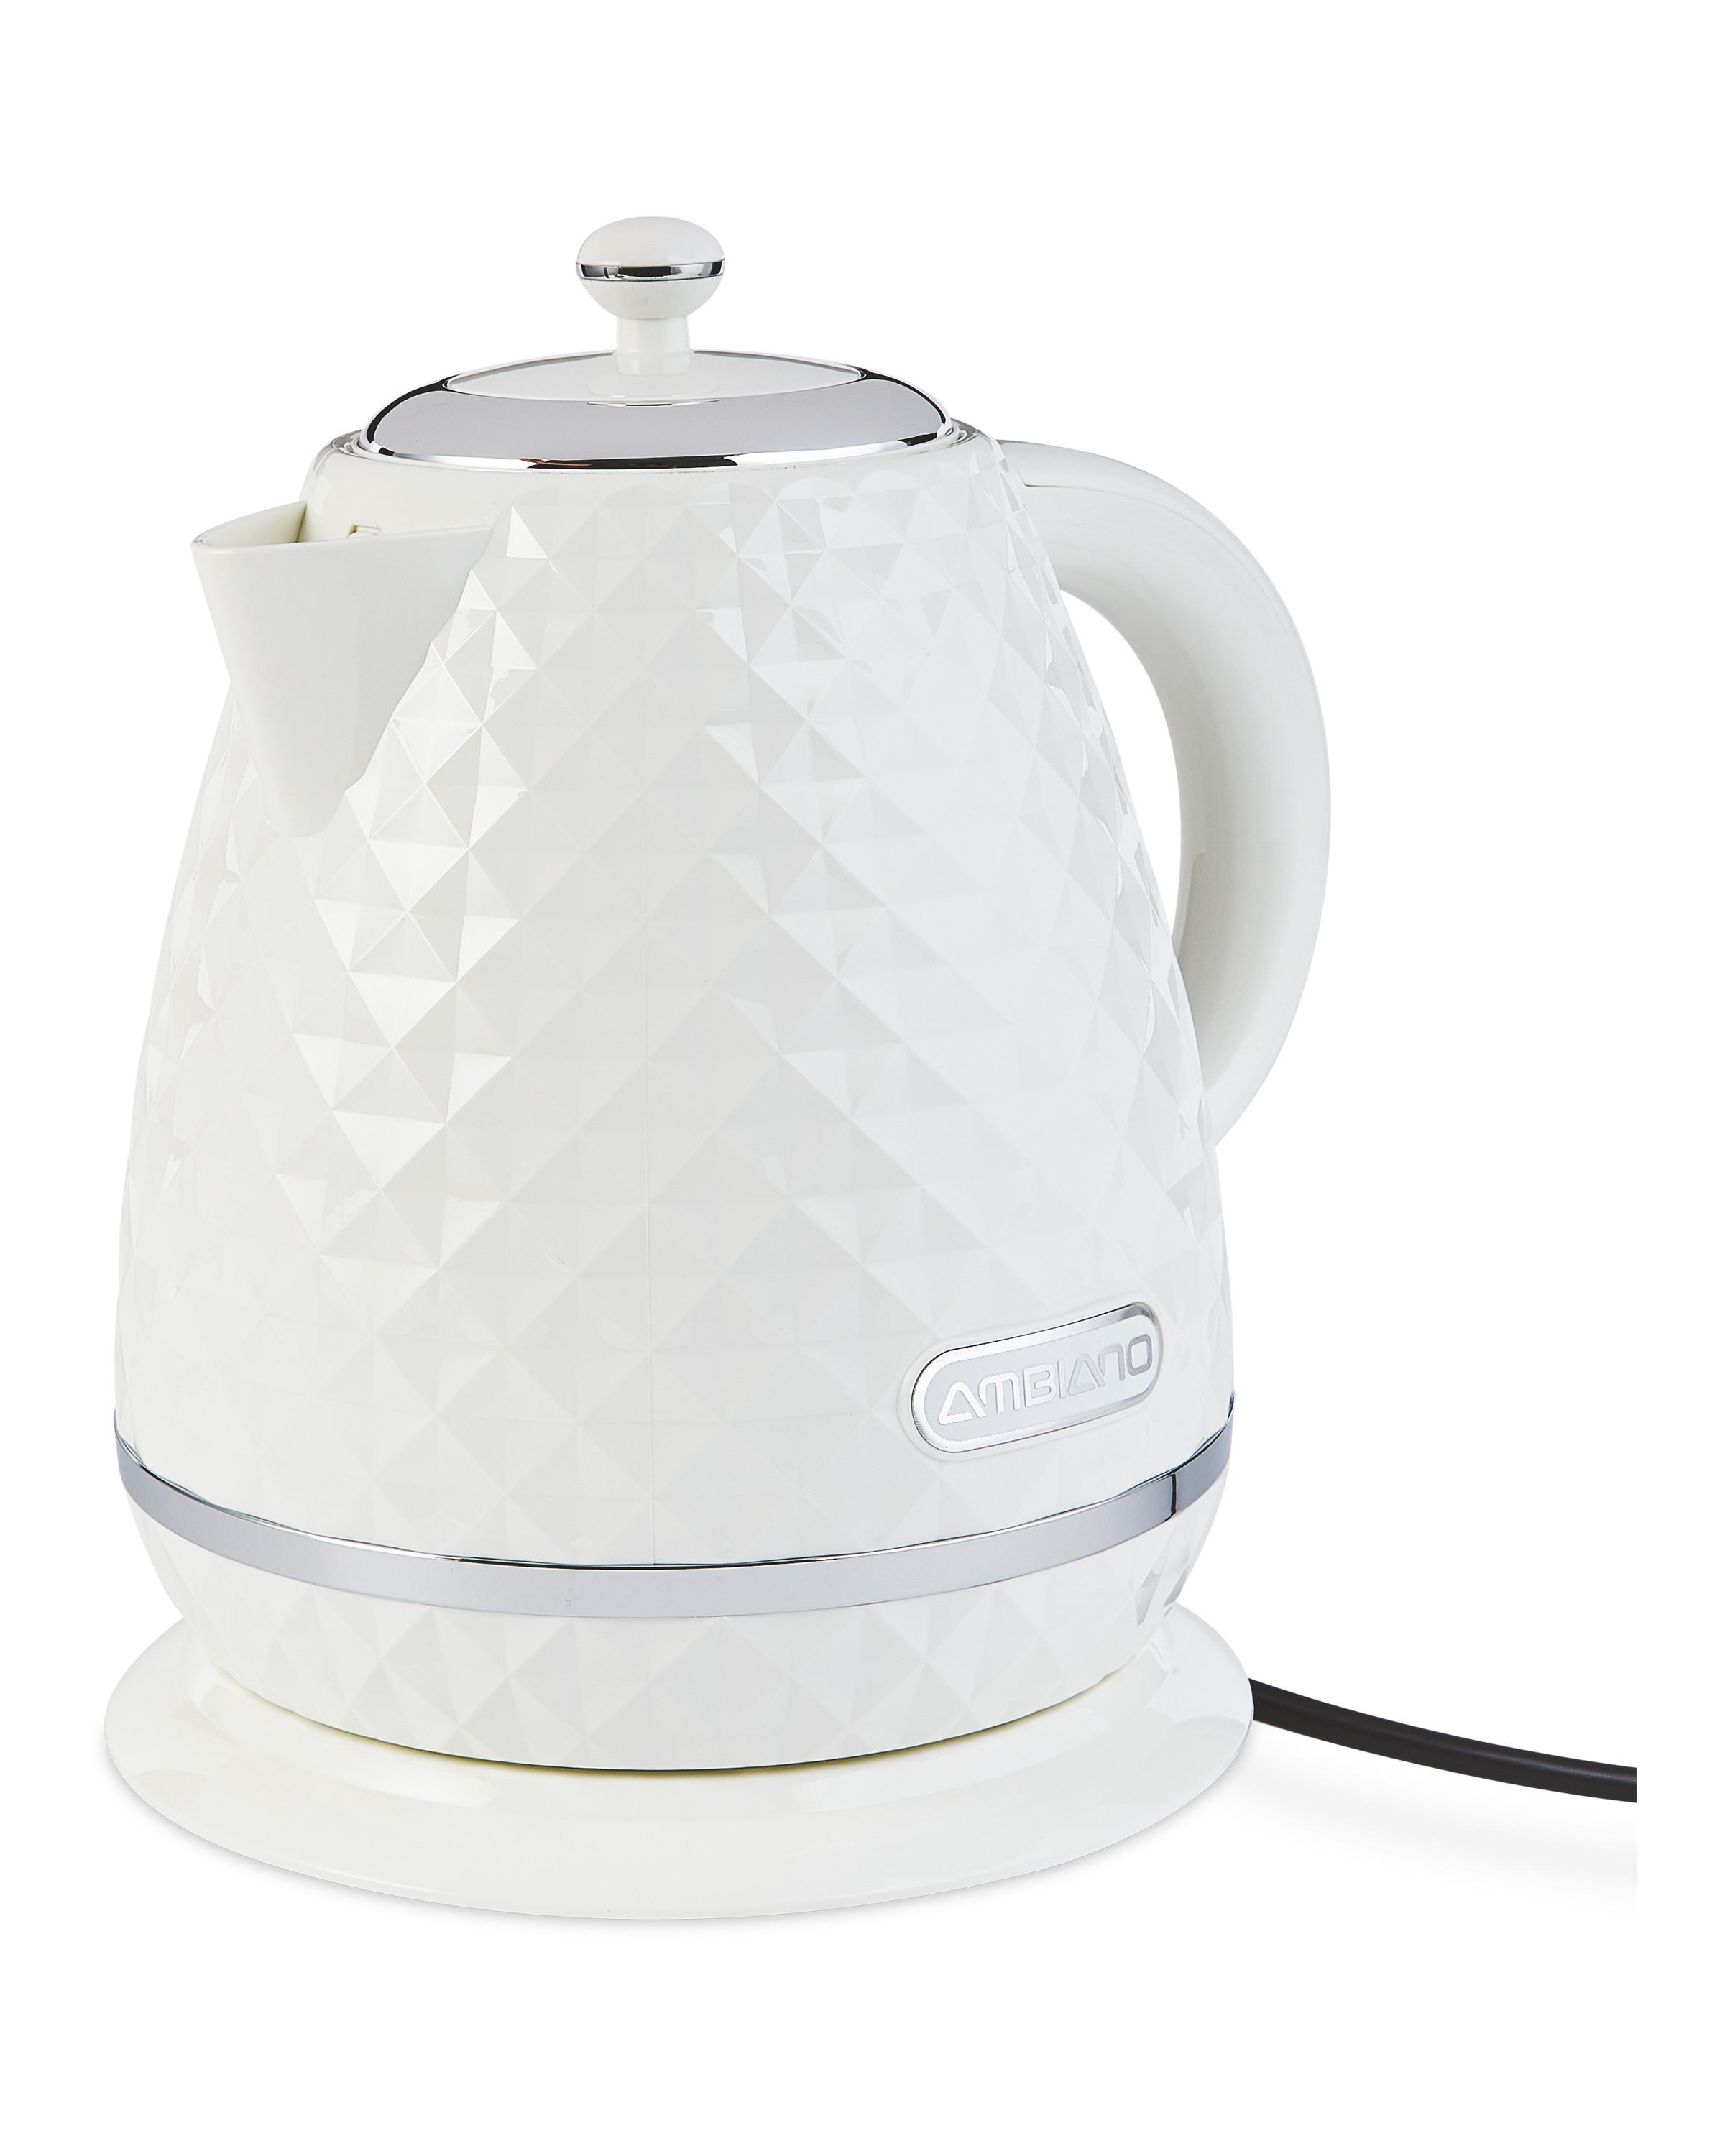 Ambiano Rapid Boil Textured Kettle